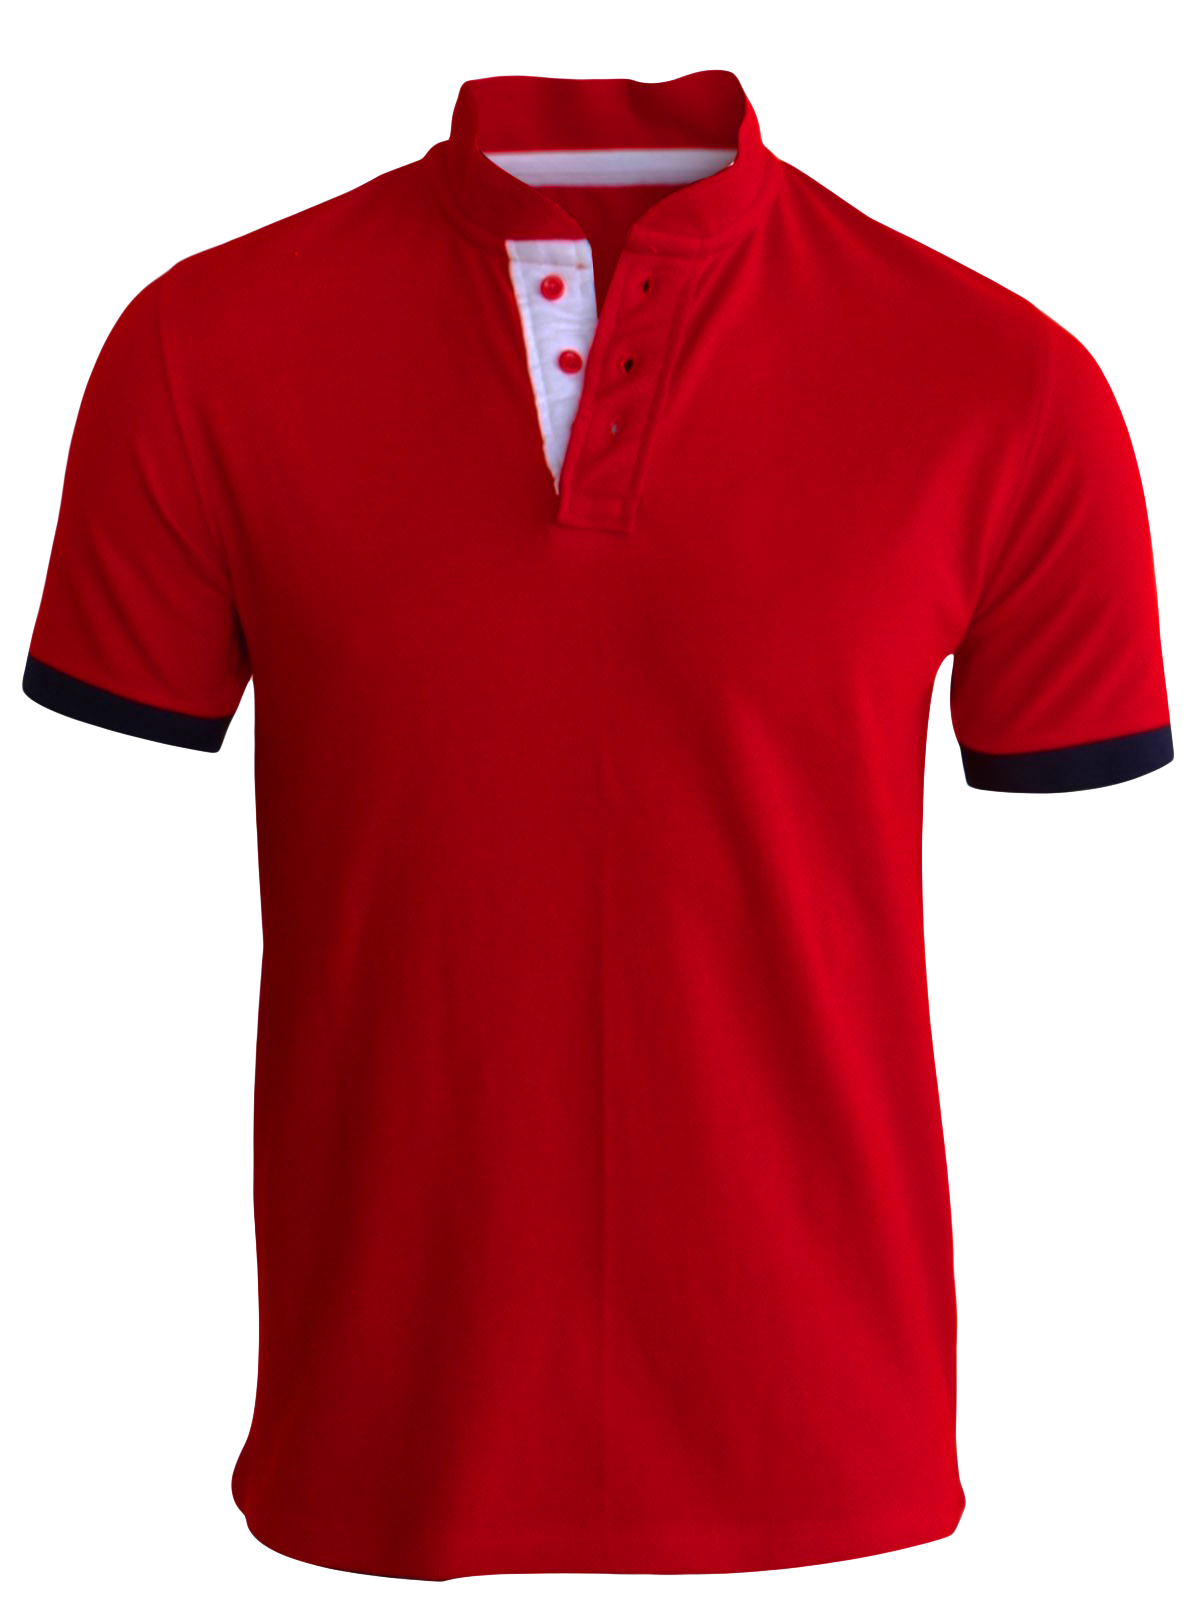 Red T Shirt PNG Image